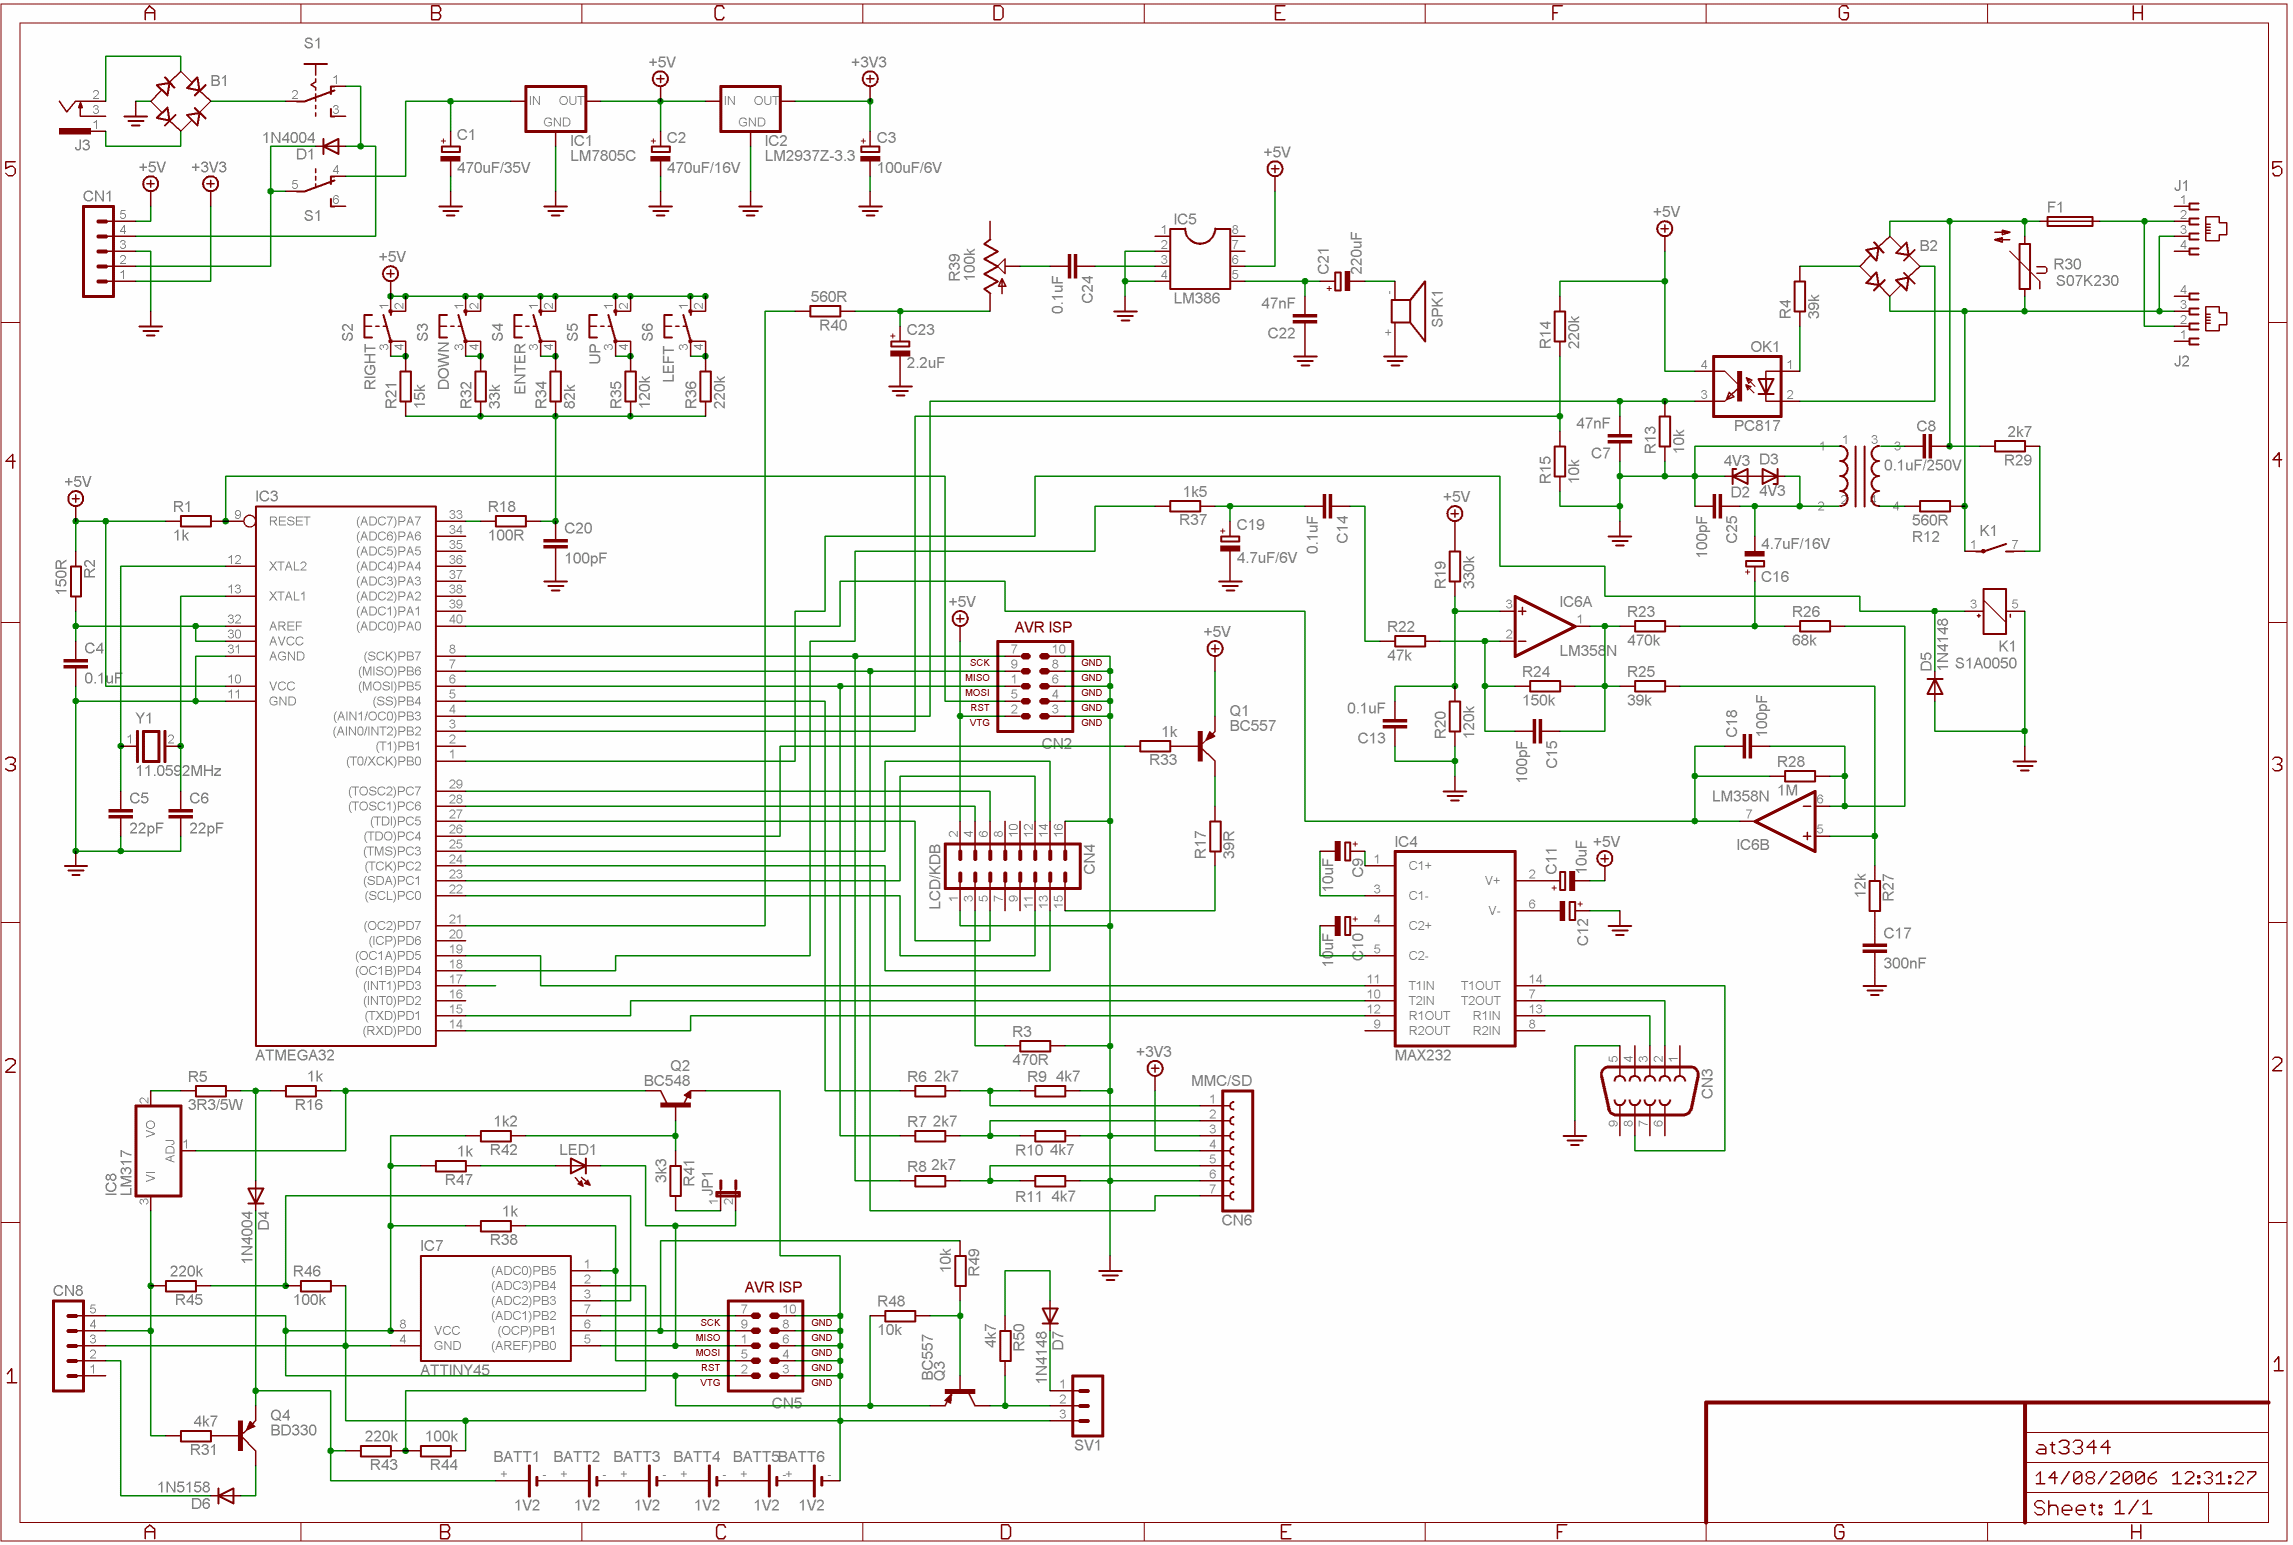 Avr Phone Recorder Telephony Platform Part 1 Lm324 Comparator Circuit Http Wwwcircuitsonlinenet Forum View Click To Enlarge